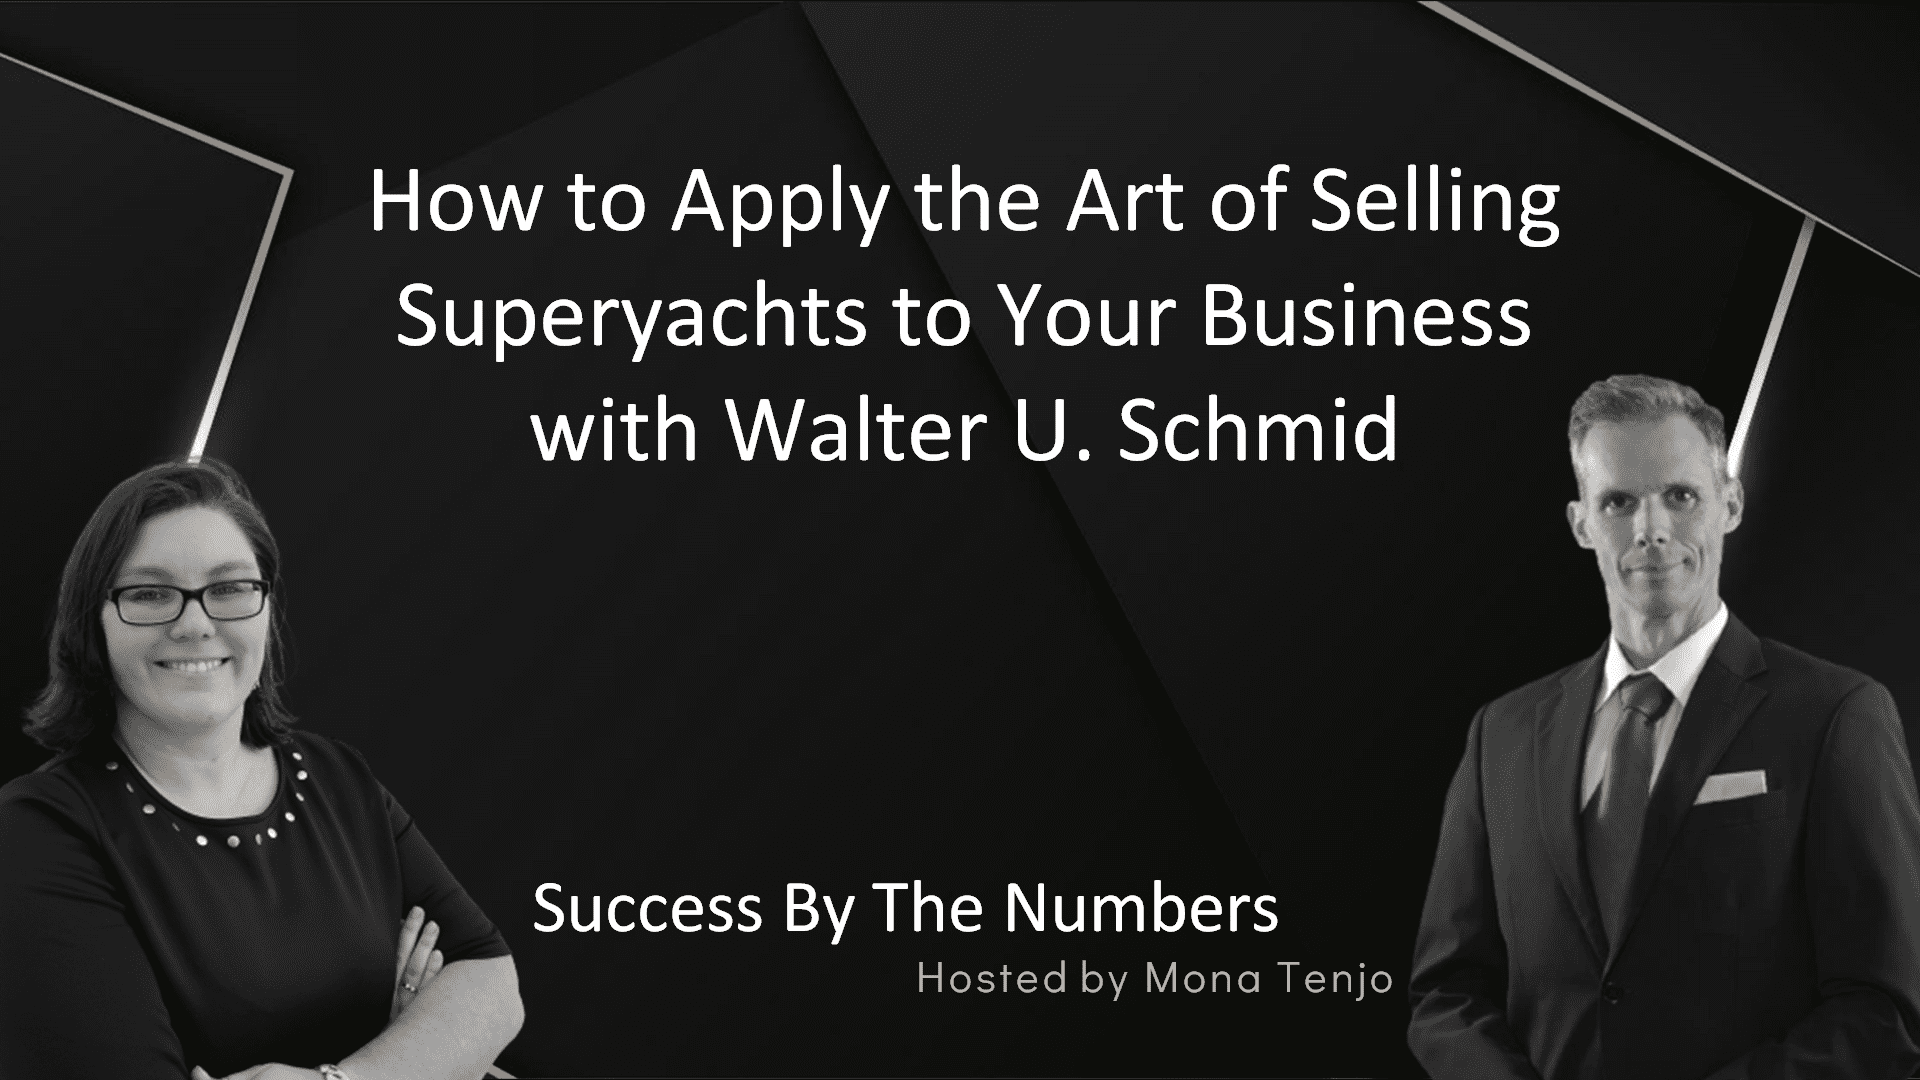 How to Apply the Art of Selling Superyachts to your Business with Walter U. Schmid